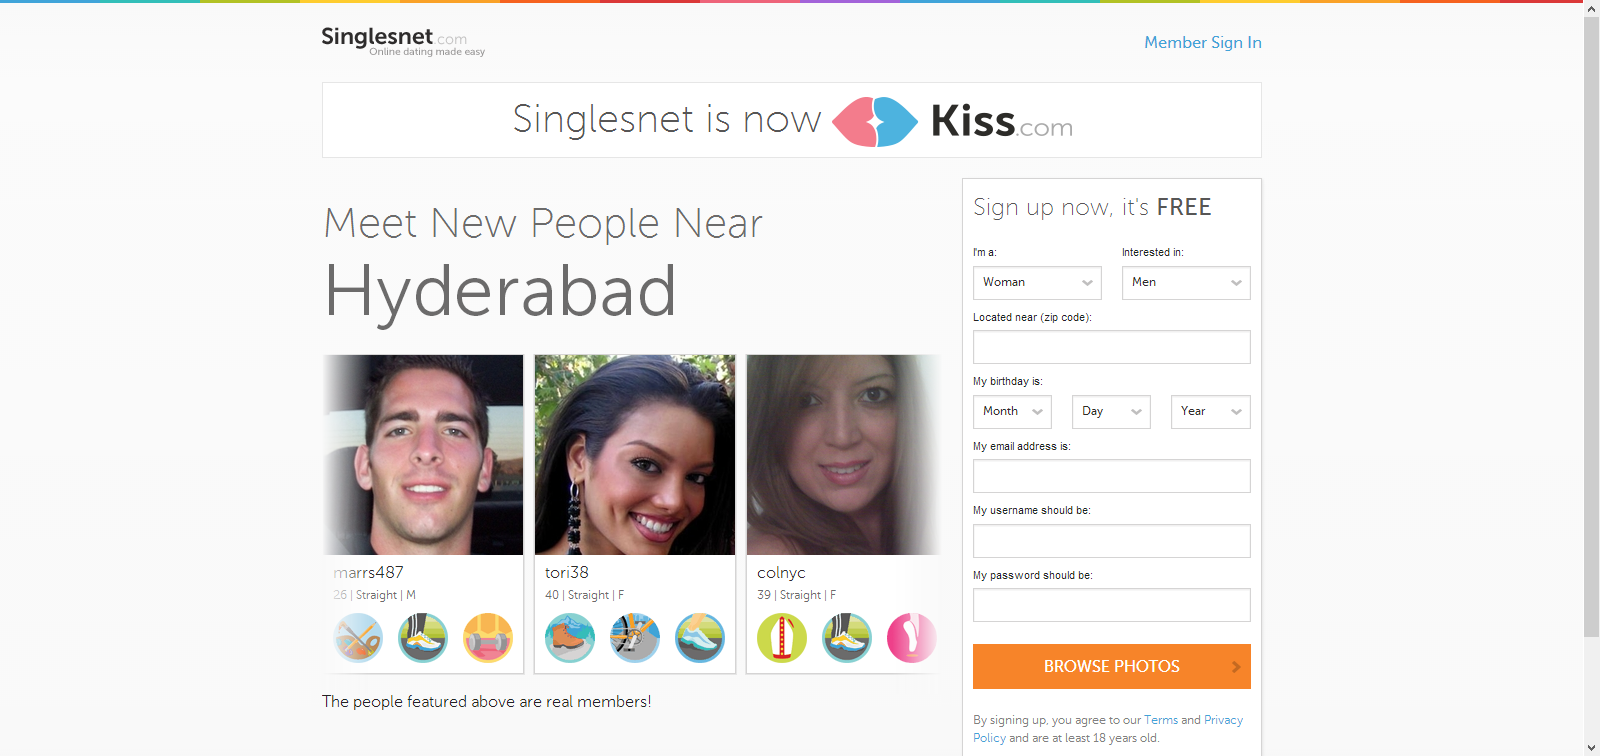 singlesnet free trial dating Singlesnet has a great free trial offer for new members 9 friendfinder: looking for friends, fun or even romance, you can join for free and take advantage of all that friendfinder has to offer.